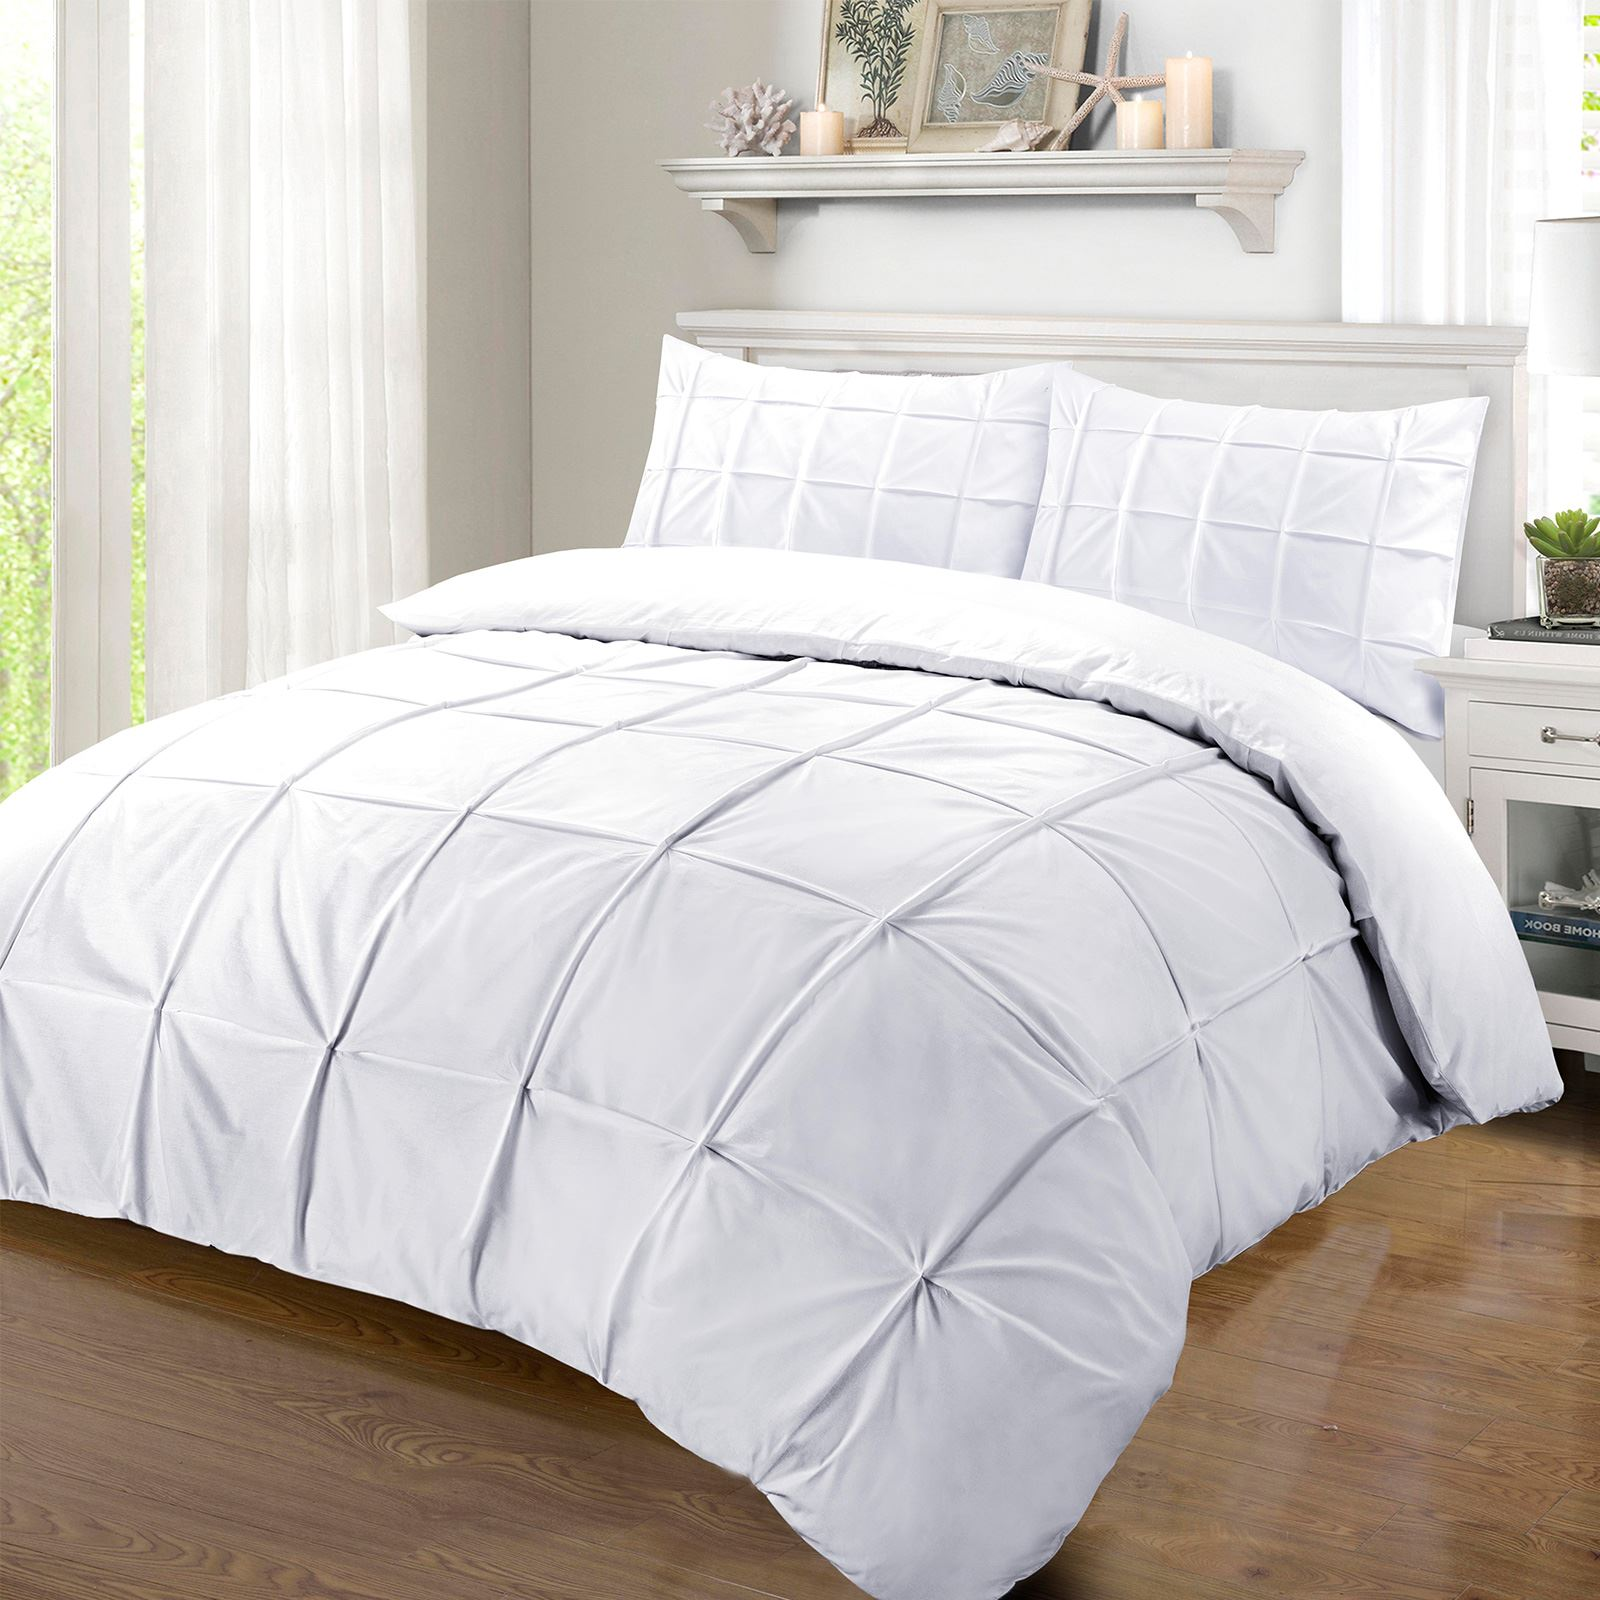 Luxury 100 Egyptian Cotton 200tc Pintuck Pleated Duvet Cover Bedding Set White Ebay